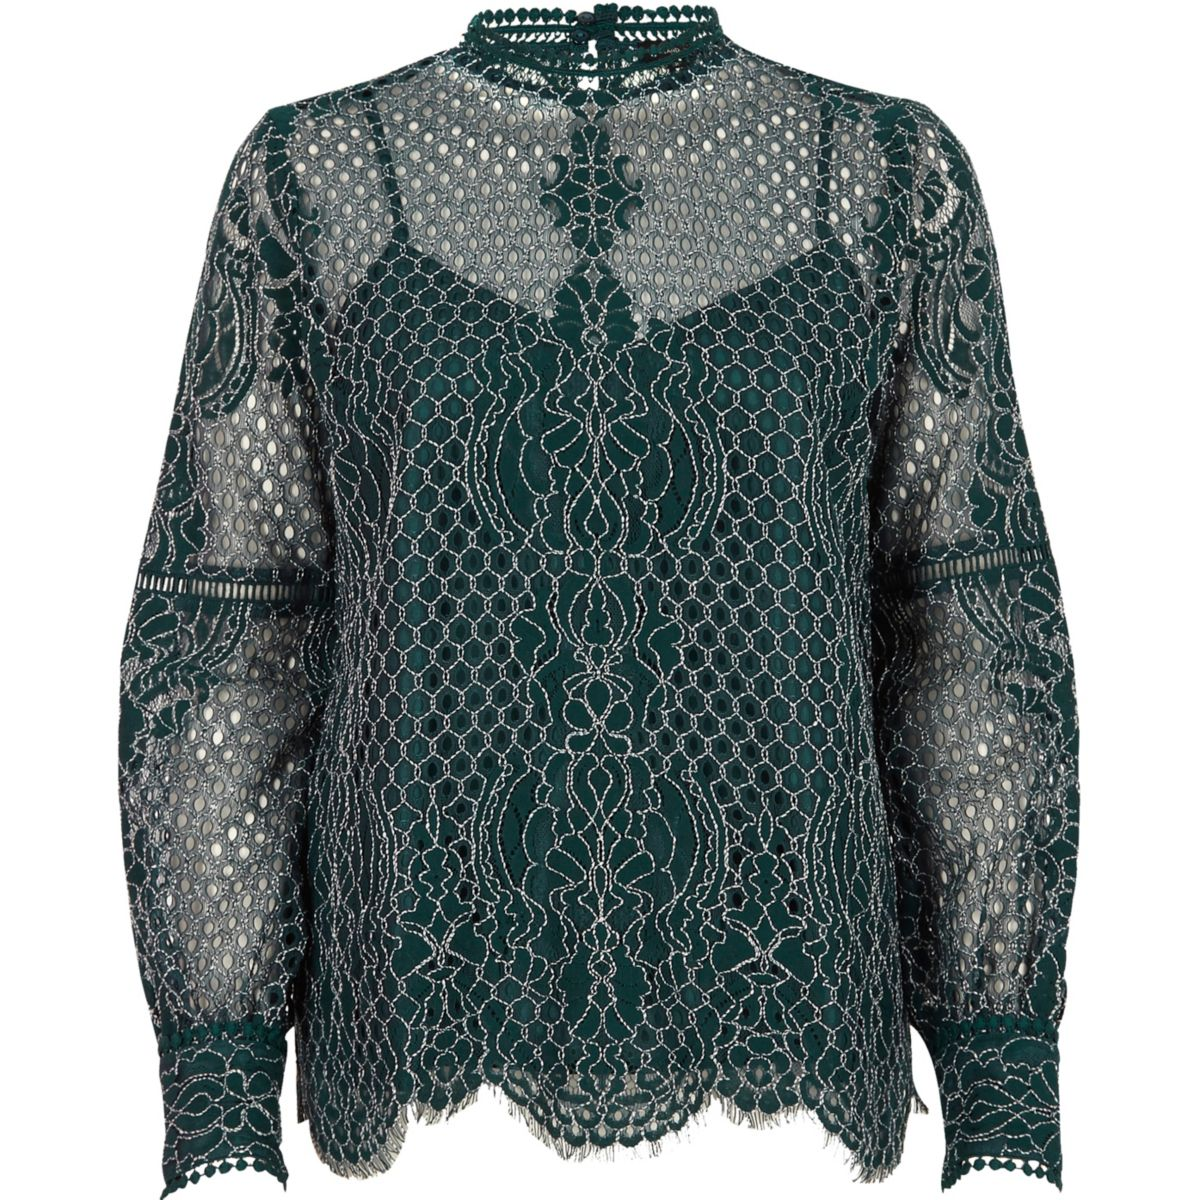 Dark green lace high neck long sleeve top - Blouses - Tops ...